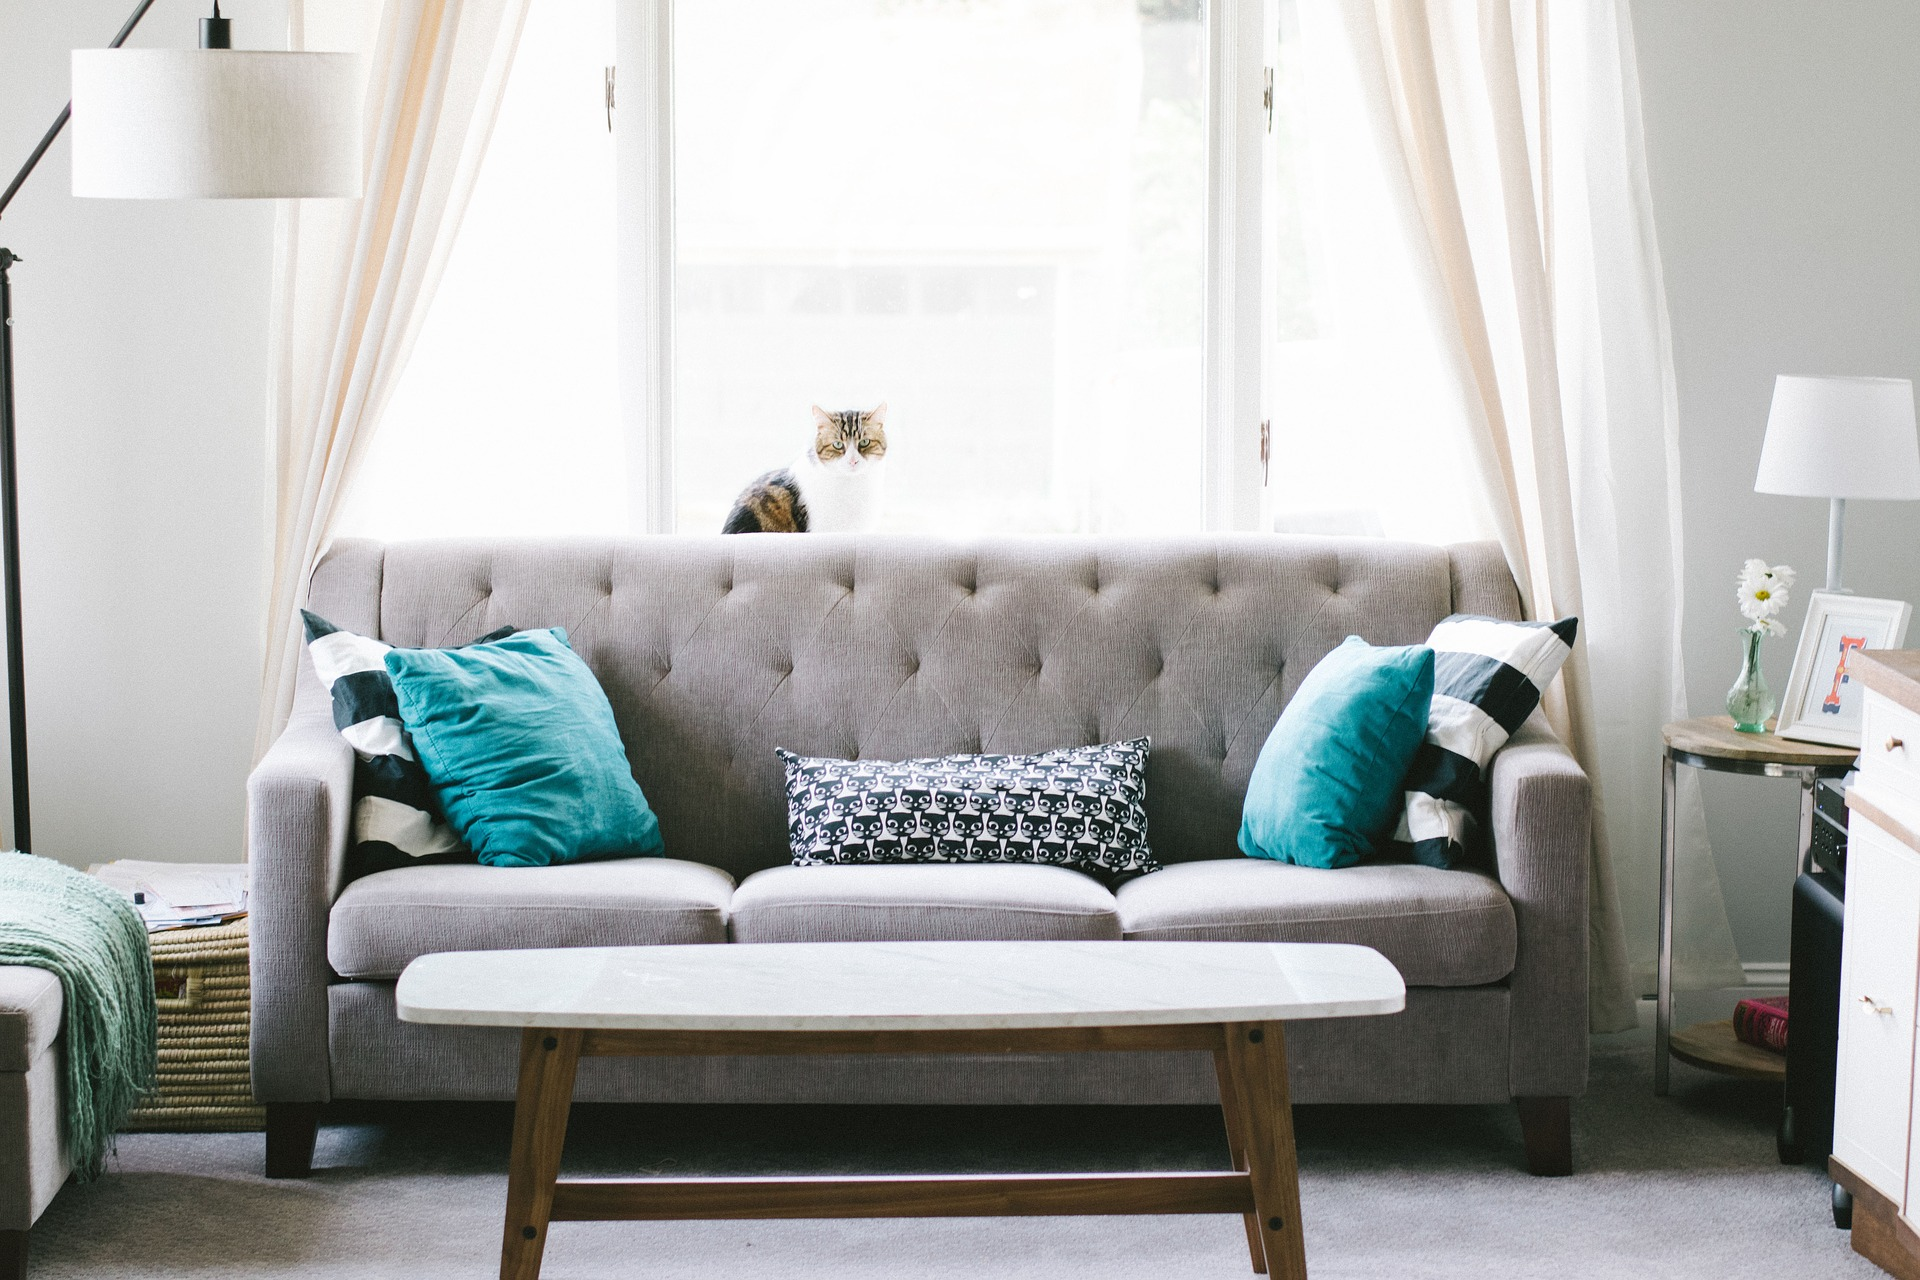 <!DOCTYPE html> <html> <head> </head> <body> <p>When it comes down to ordering your brand new sofa, how do you know which sofa filling is the best one for you?</p> <p>Fun fact – The most common filling for seat cushions is foam.</p> <h4>When selecting a sofa what filling is best for you?</h4> <p>Your sofa seat cushions are made up of one of three F's: Foam, Feather or fibre. In fact, most sofas are made up of all three of these factors to a certain degree. All these factors will provide different levels of comfort. </p> <p> </p> </body> </html>